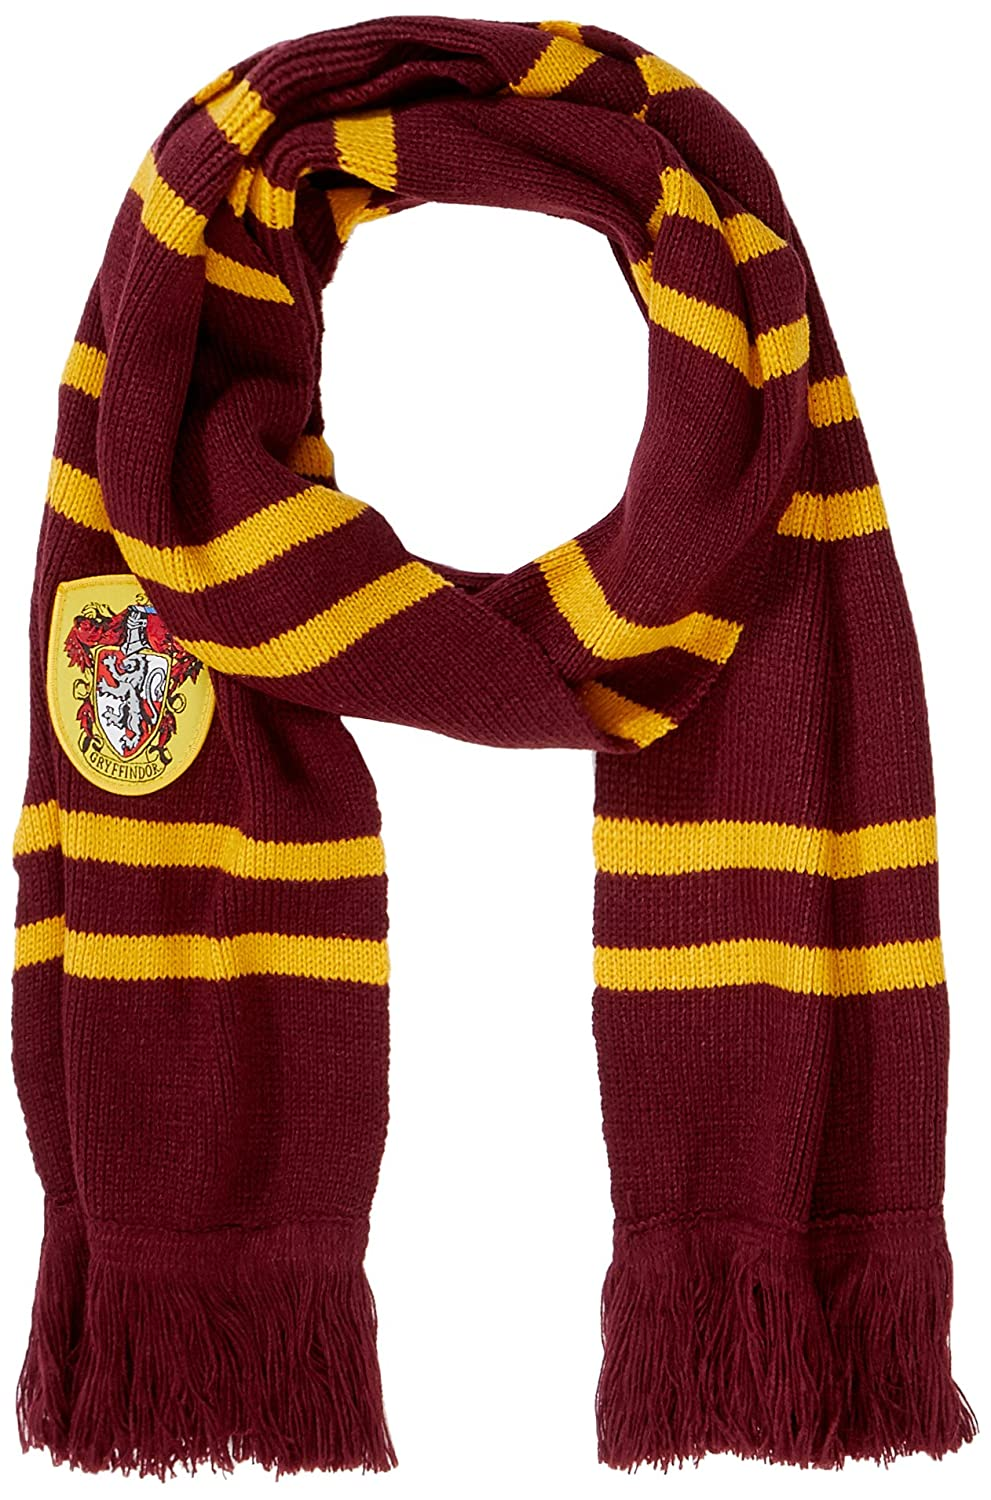 Harry Potter Scarf - Official - Ultra Soft Knitted Fabric - by Cinereplicas